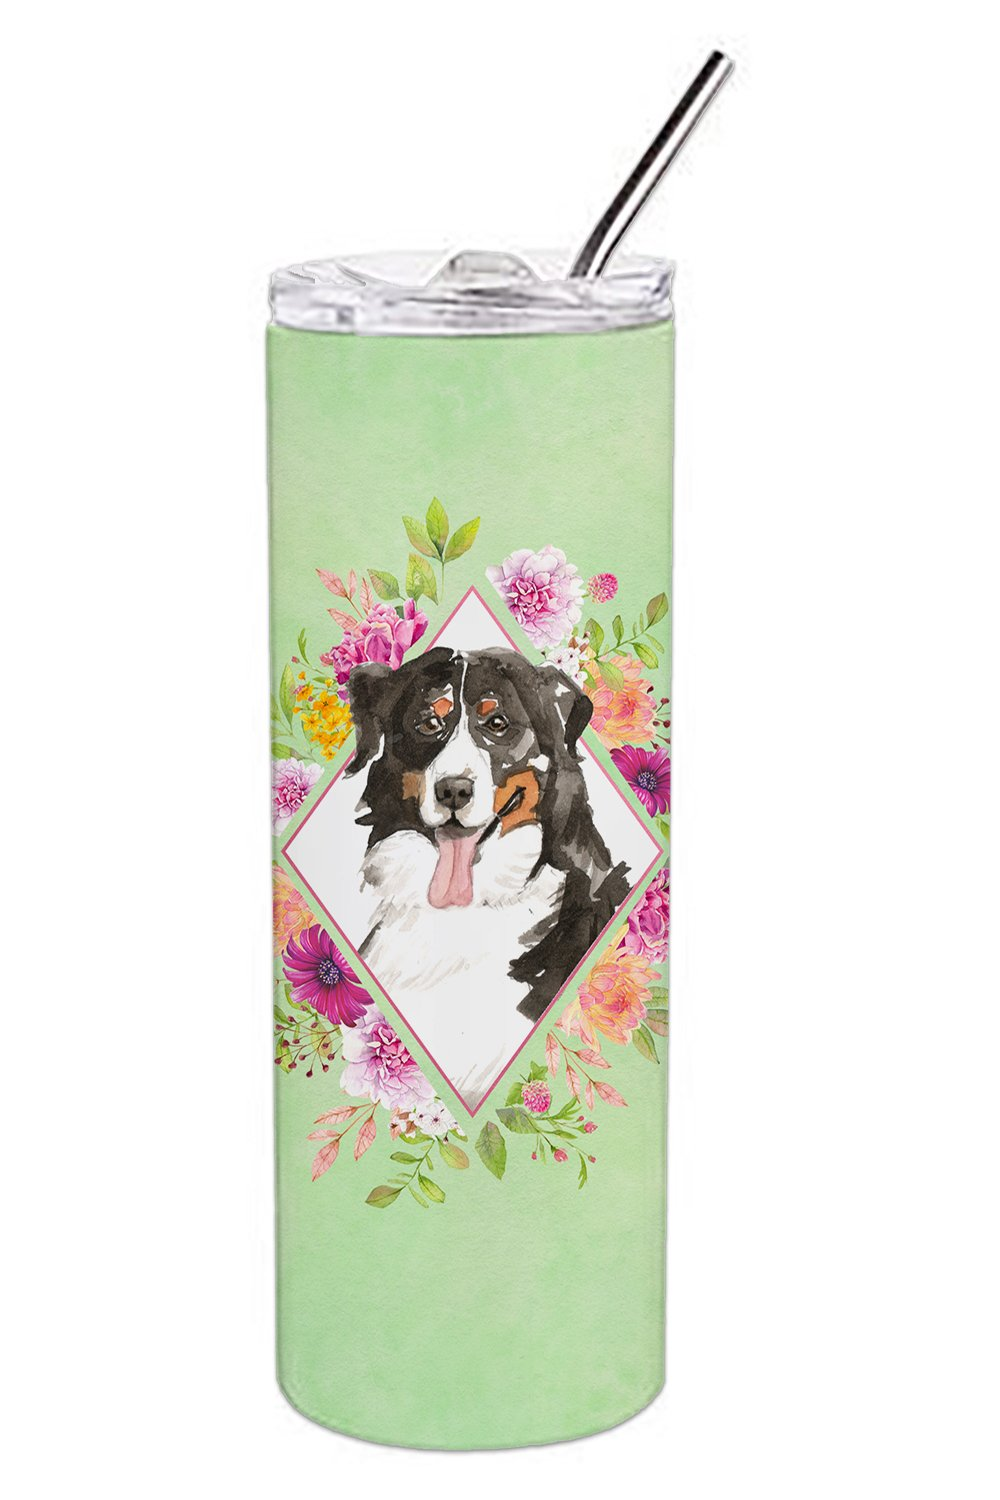 Bernese Mountain Dog Green Flowers Double Walled Stainless Steel 20 oz Skinny Tumbler CK4424TBL20 by Caroline's Treasures